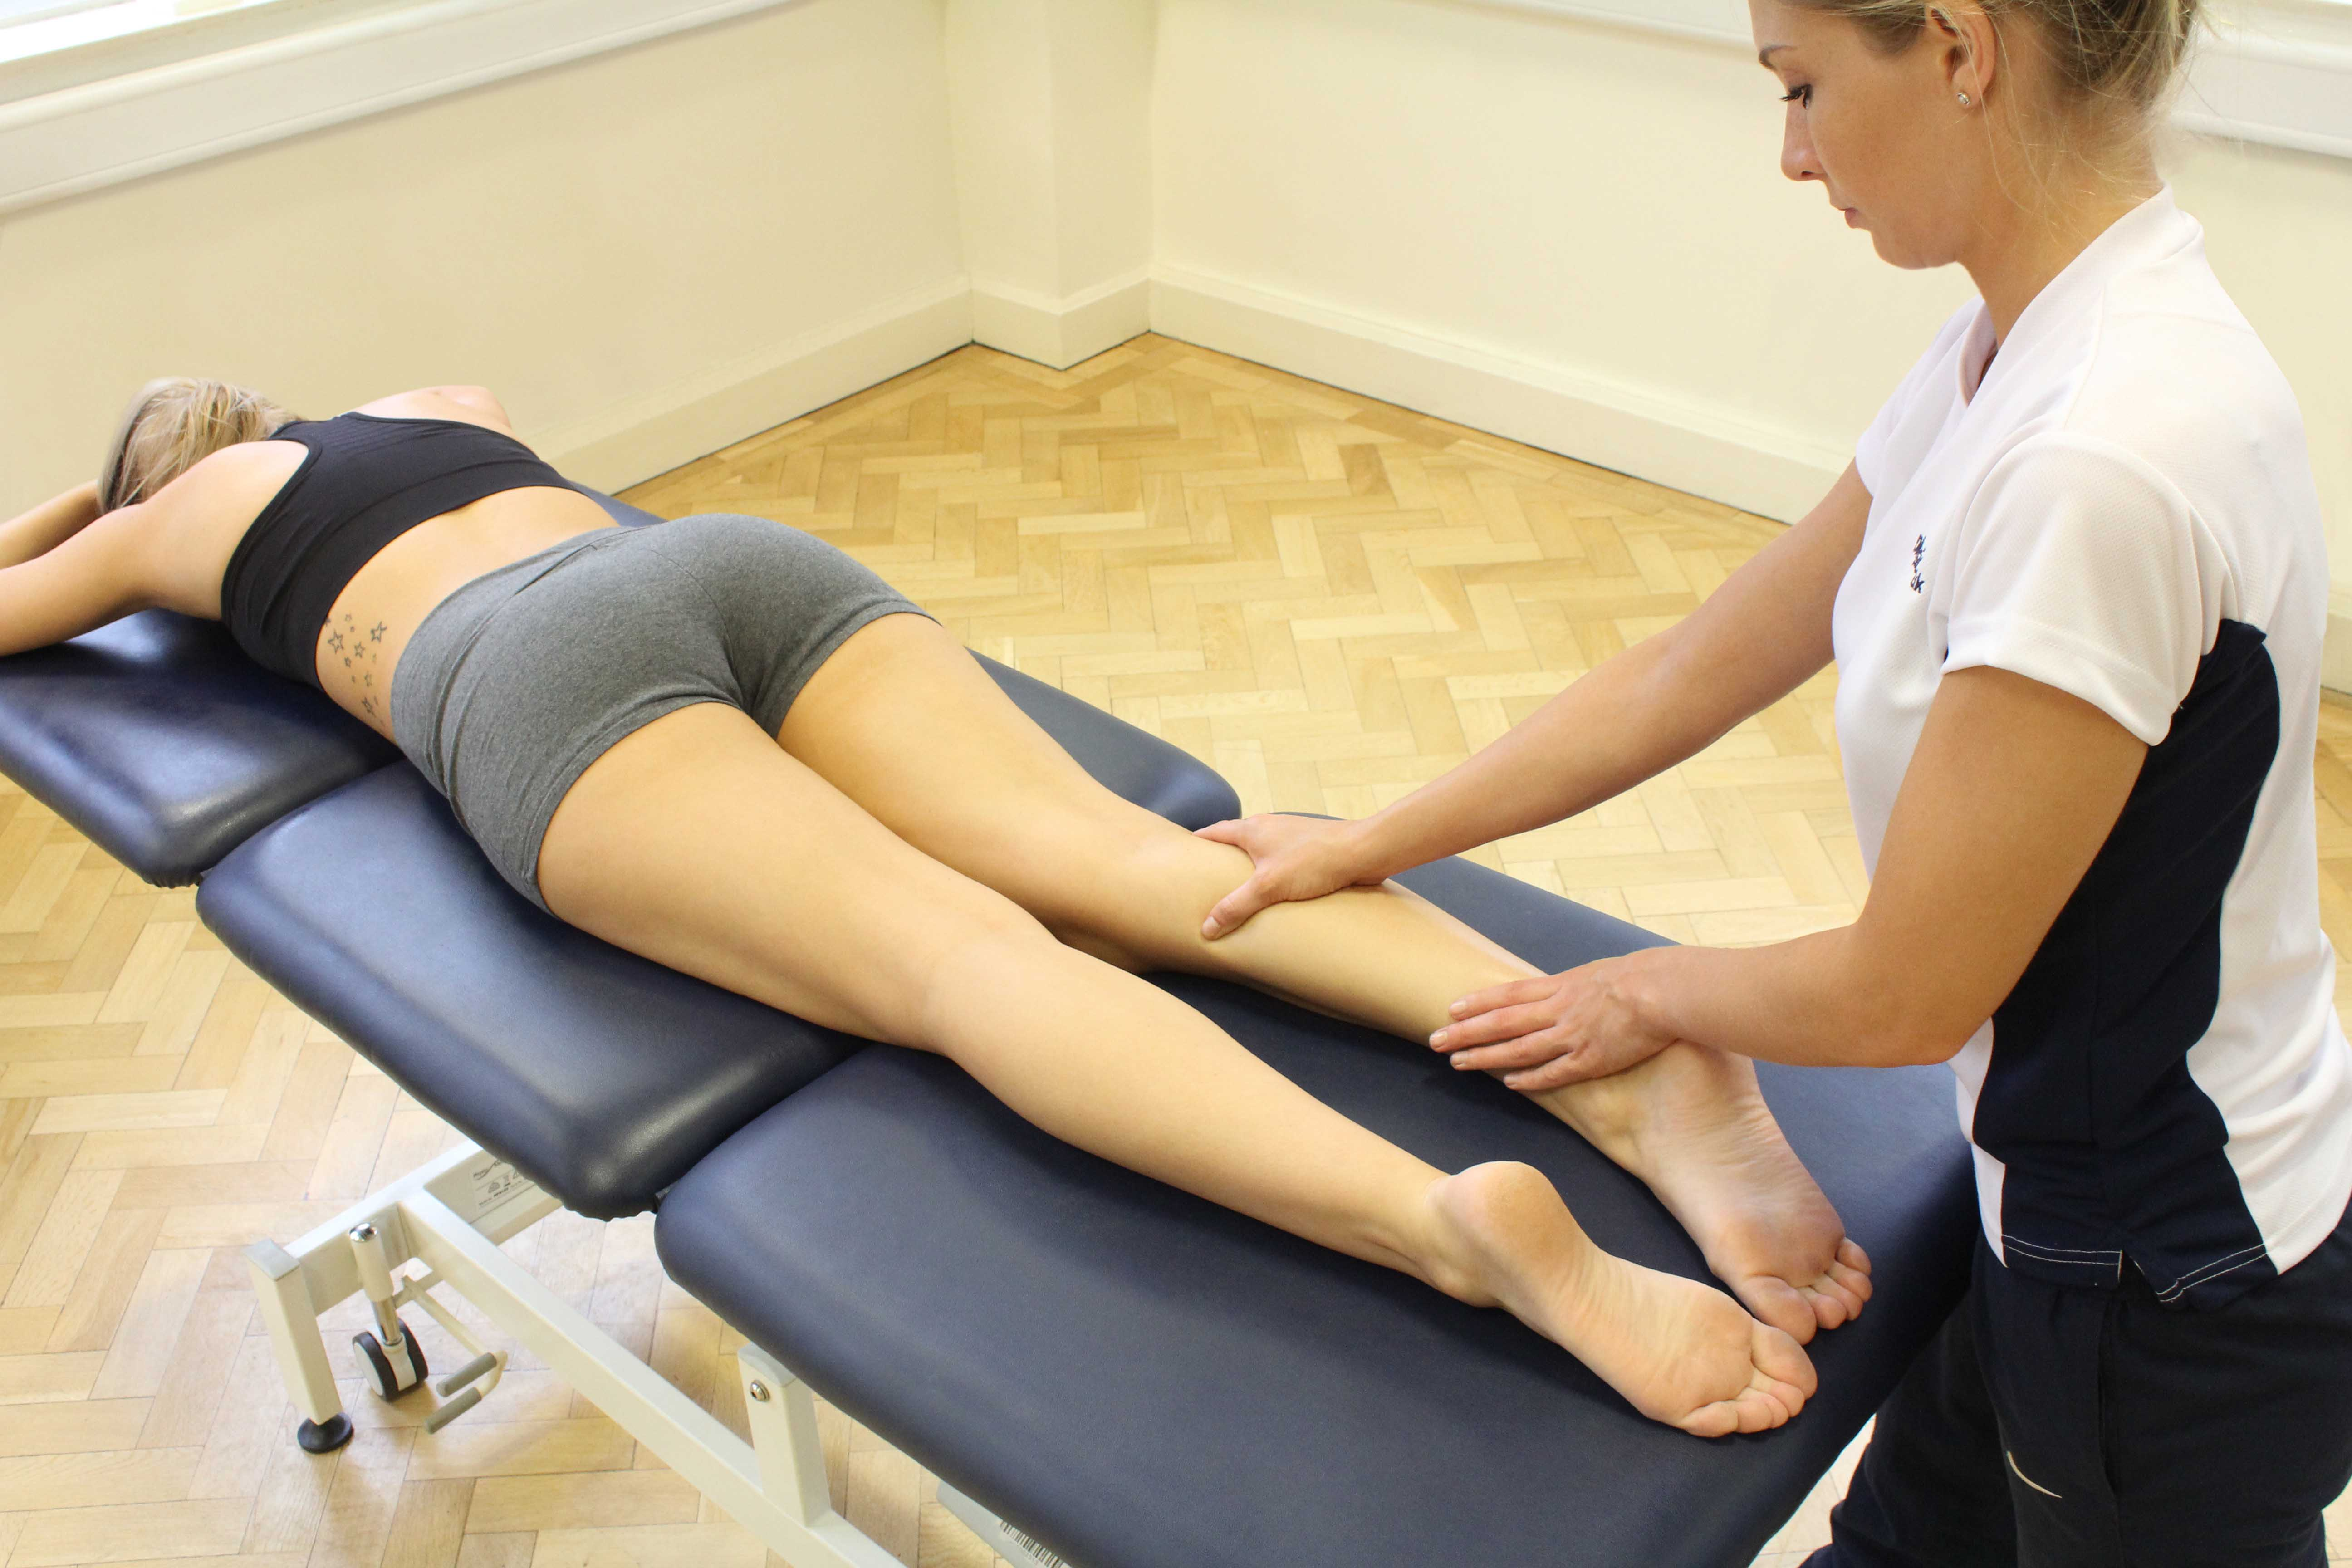 Soft Tissue Massage targeting gastrocnemius and soleus muscles